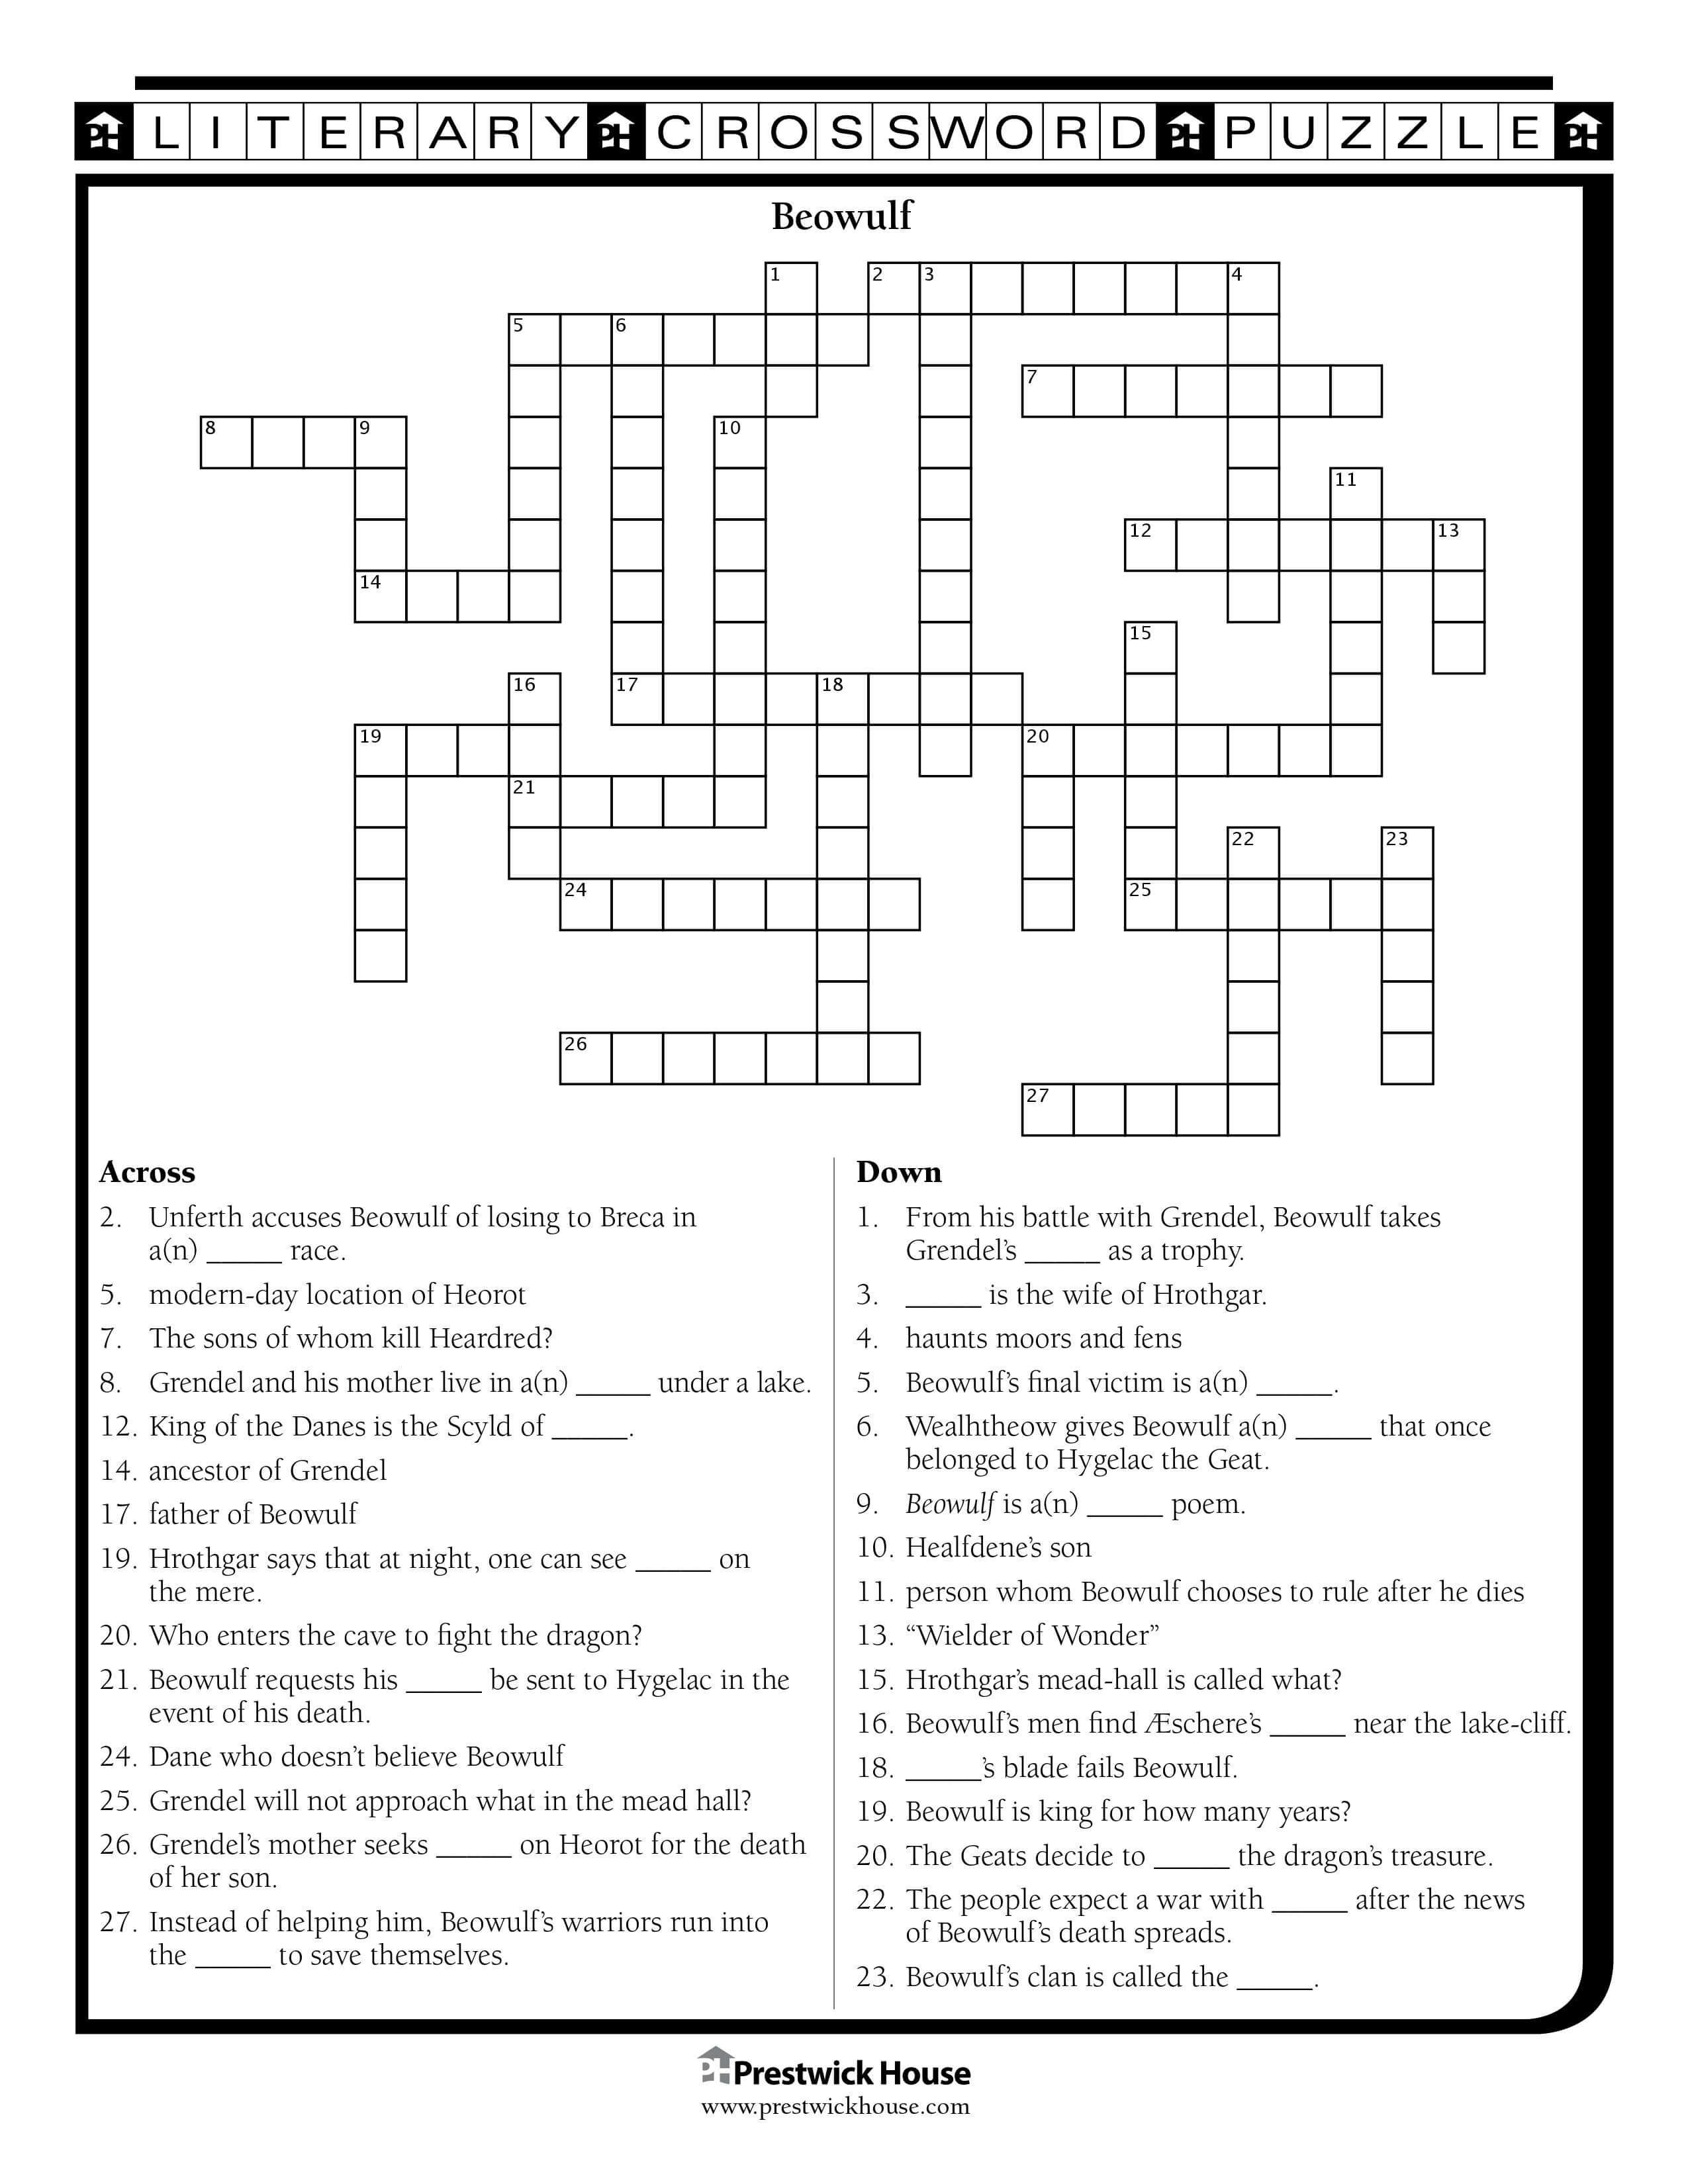 Beowulf Free Crossword Puzzle Teacher Lesson Plans Crossword